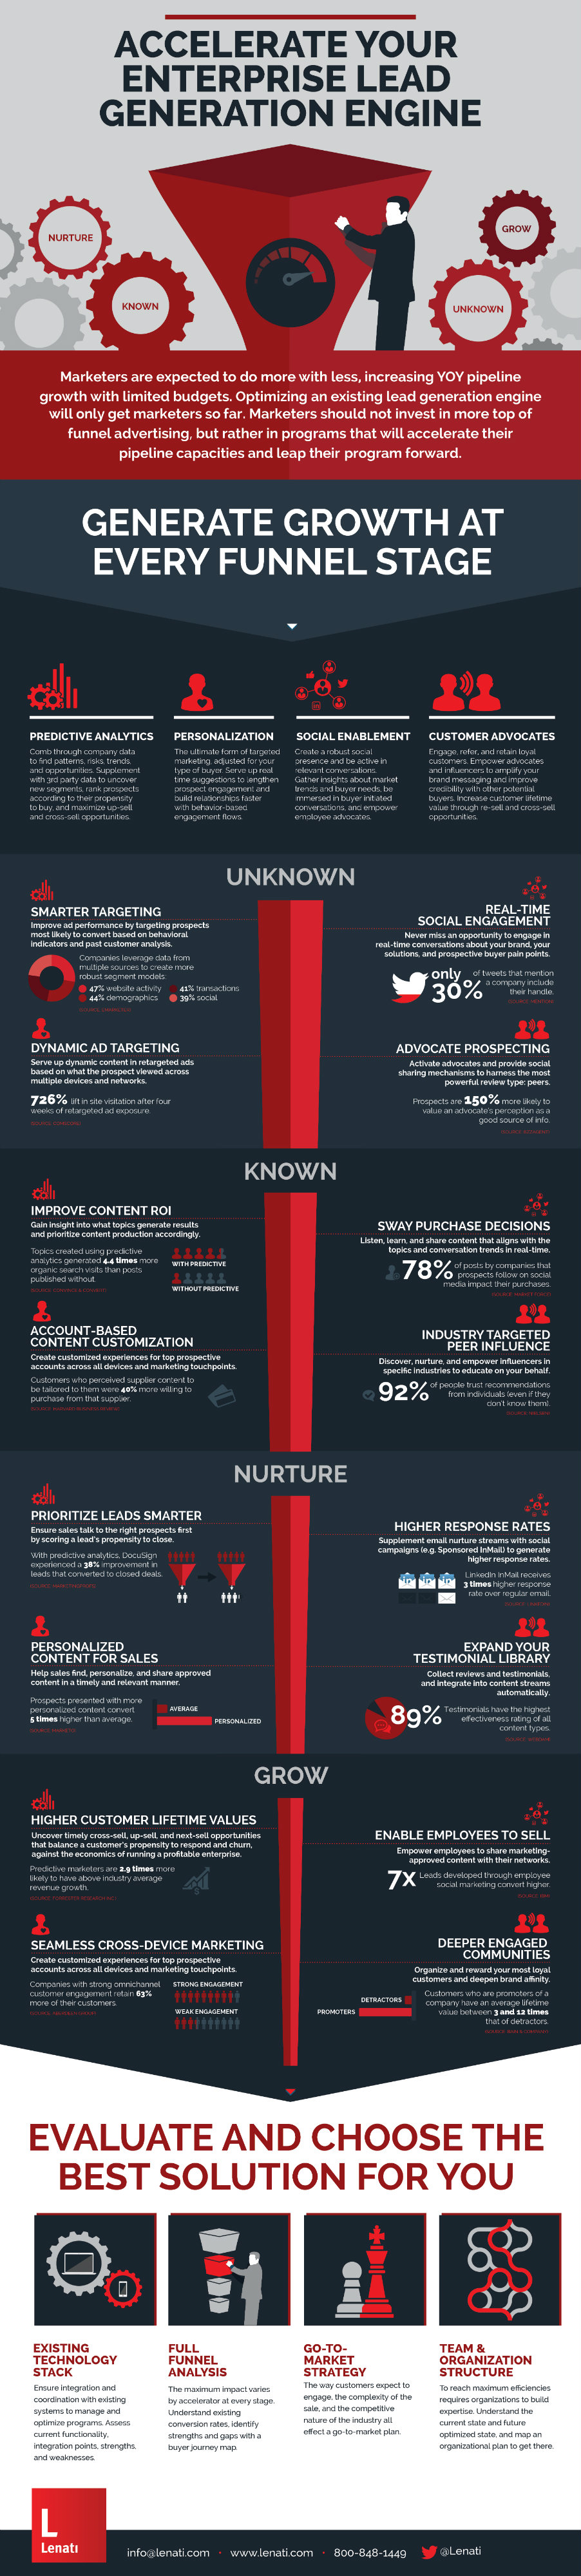 Enterprise Lead Generation Lenati Marketing Technology Strategy Infographic B2B 1